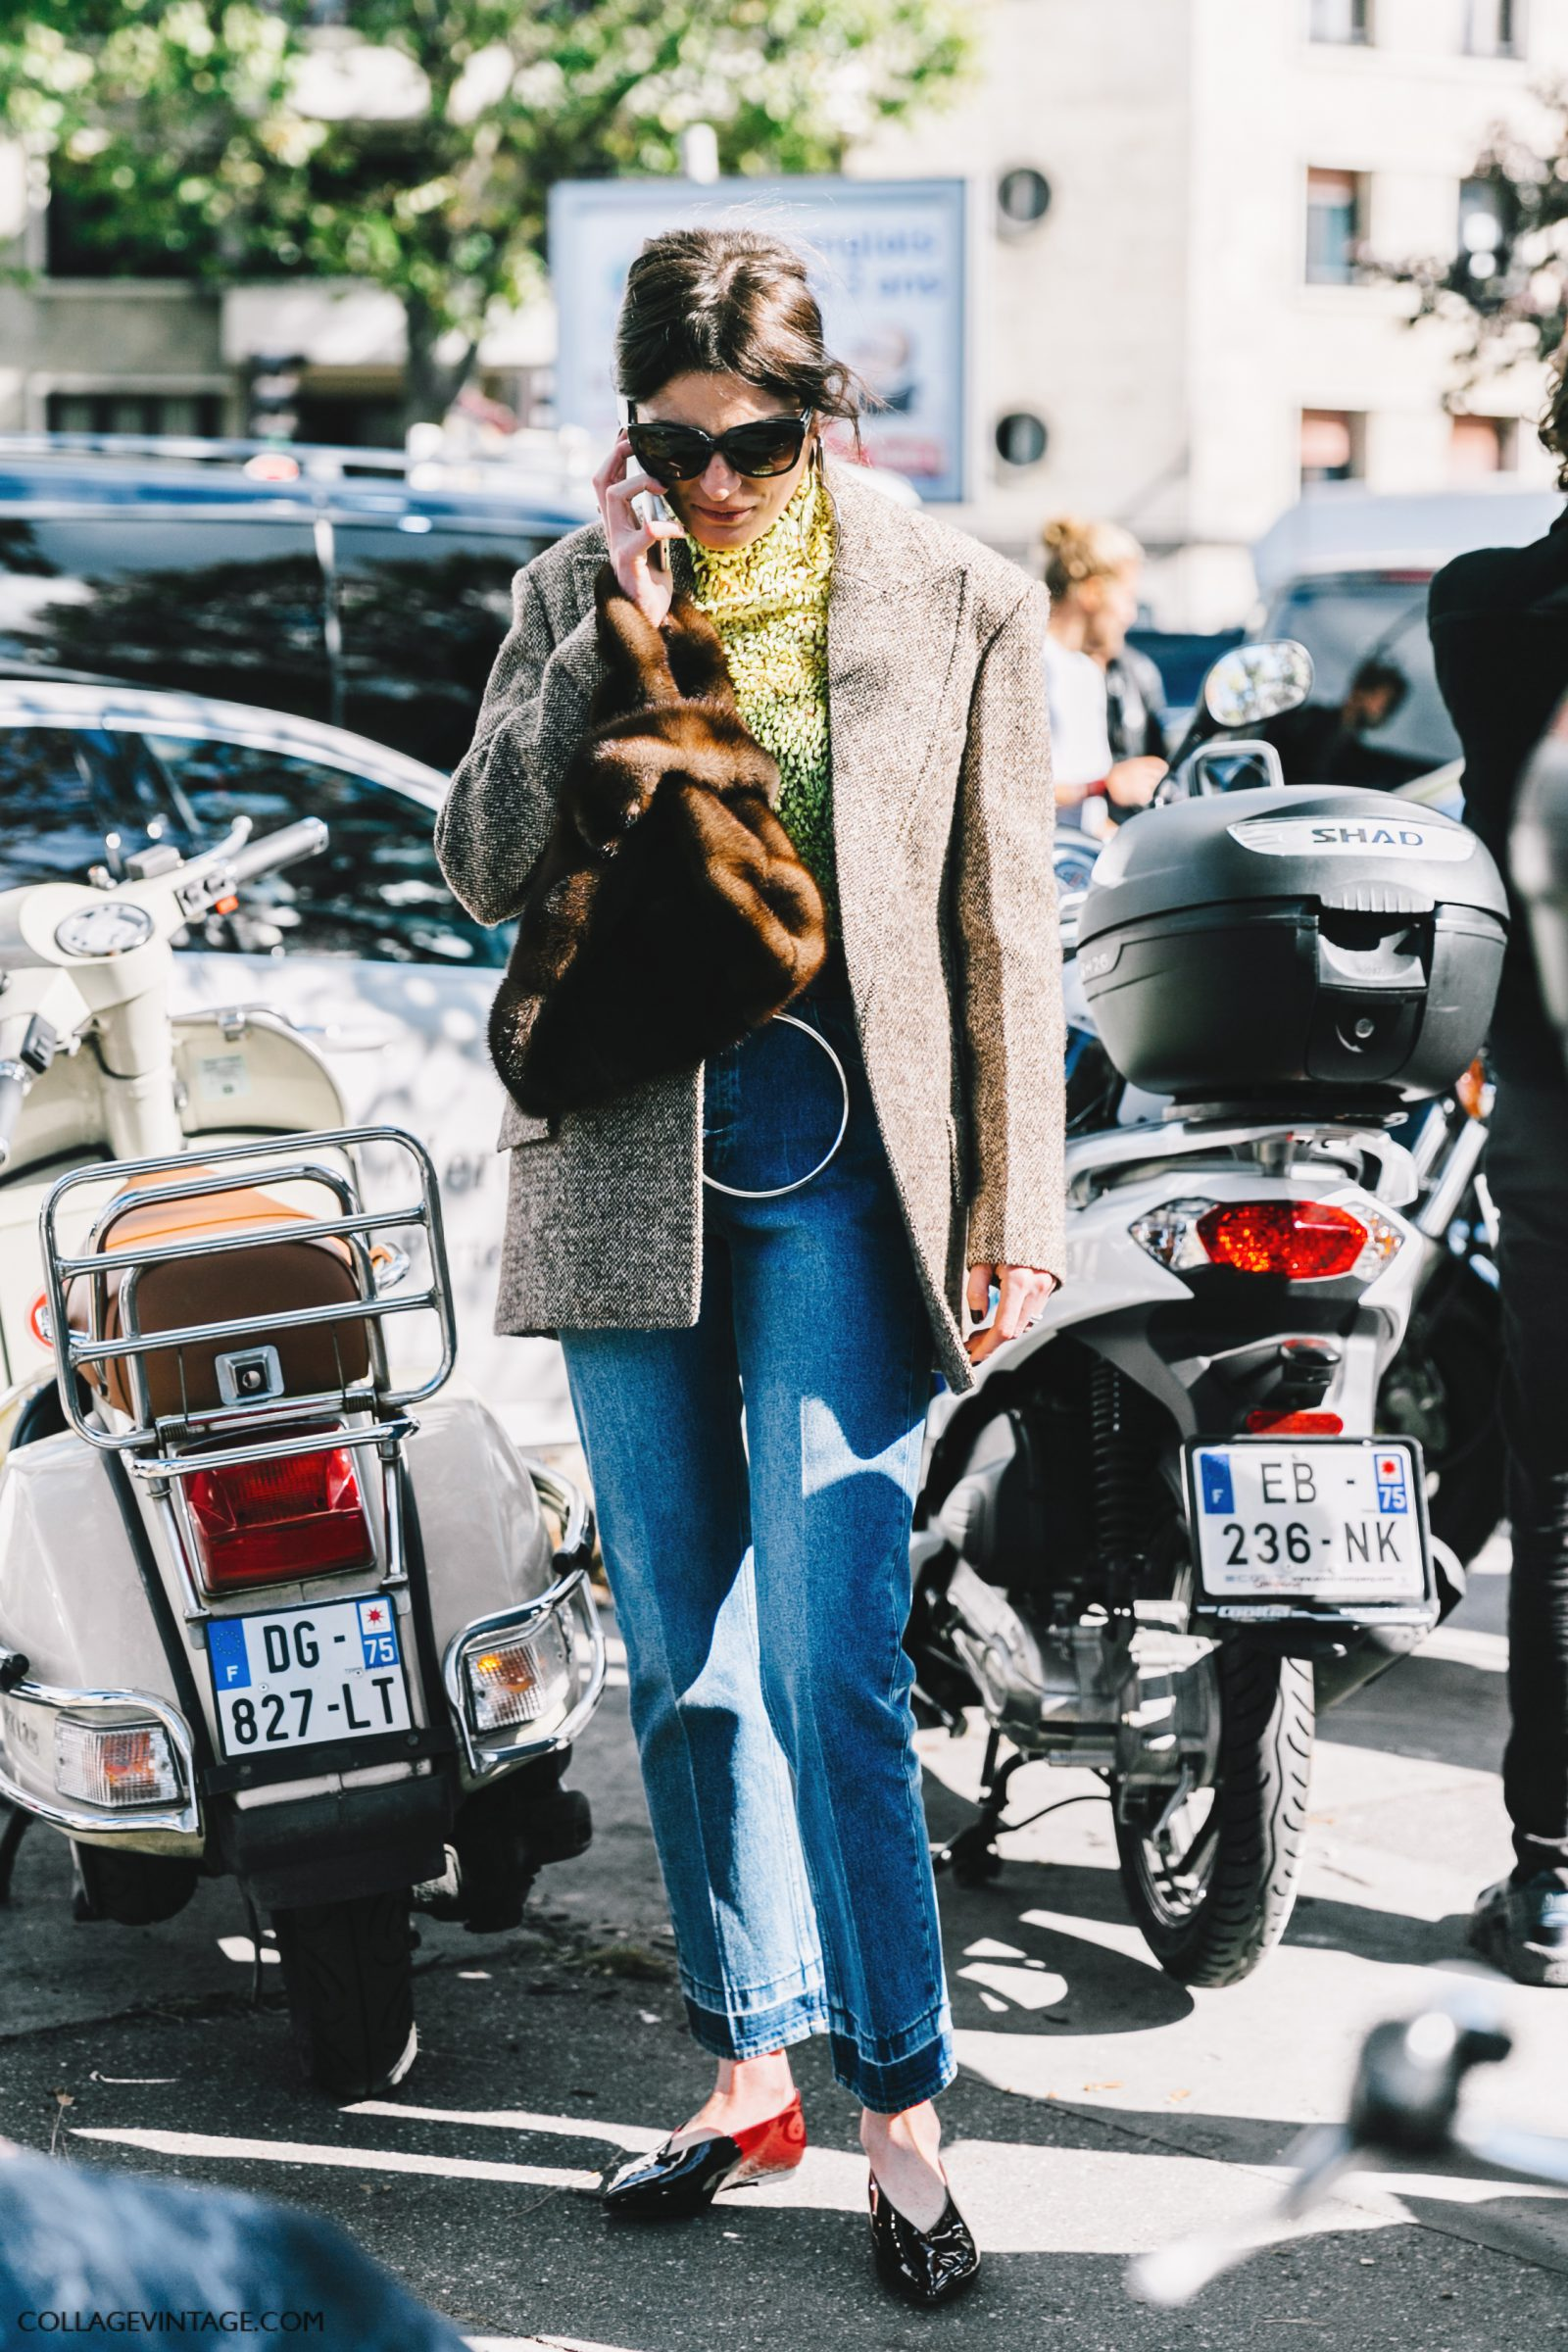 pfw-paris_fashion_week_ss17-street_style-outfits-collage_vintage-valentino-balenciaga-celine-70